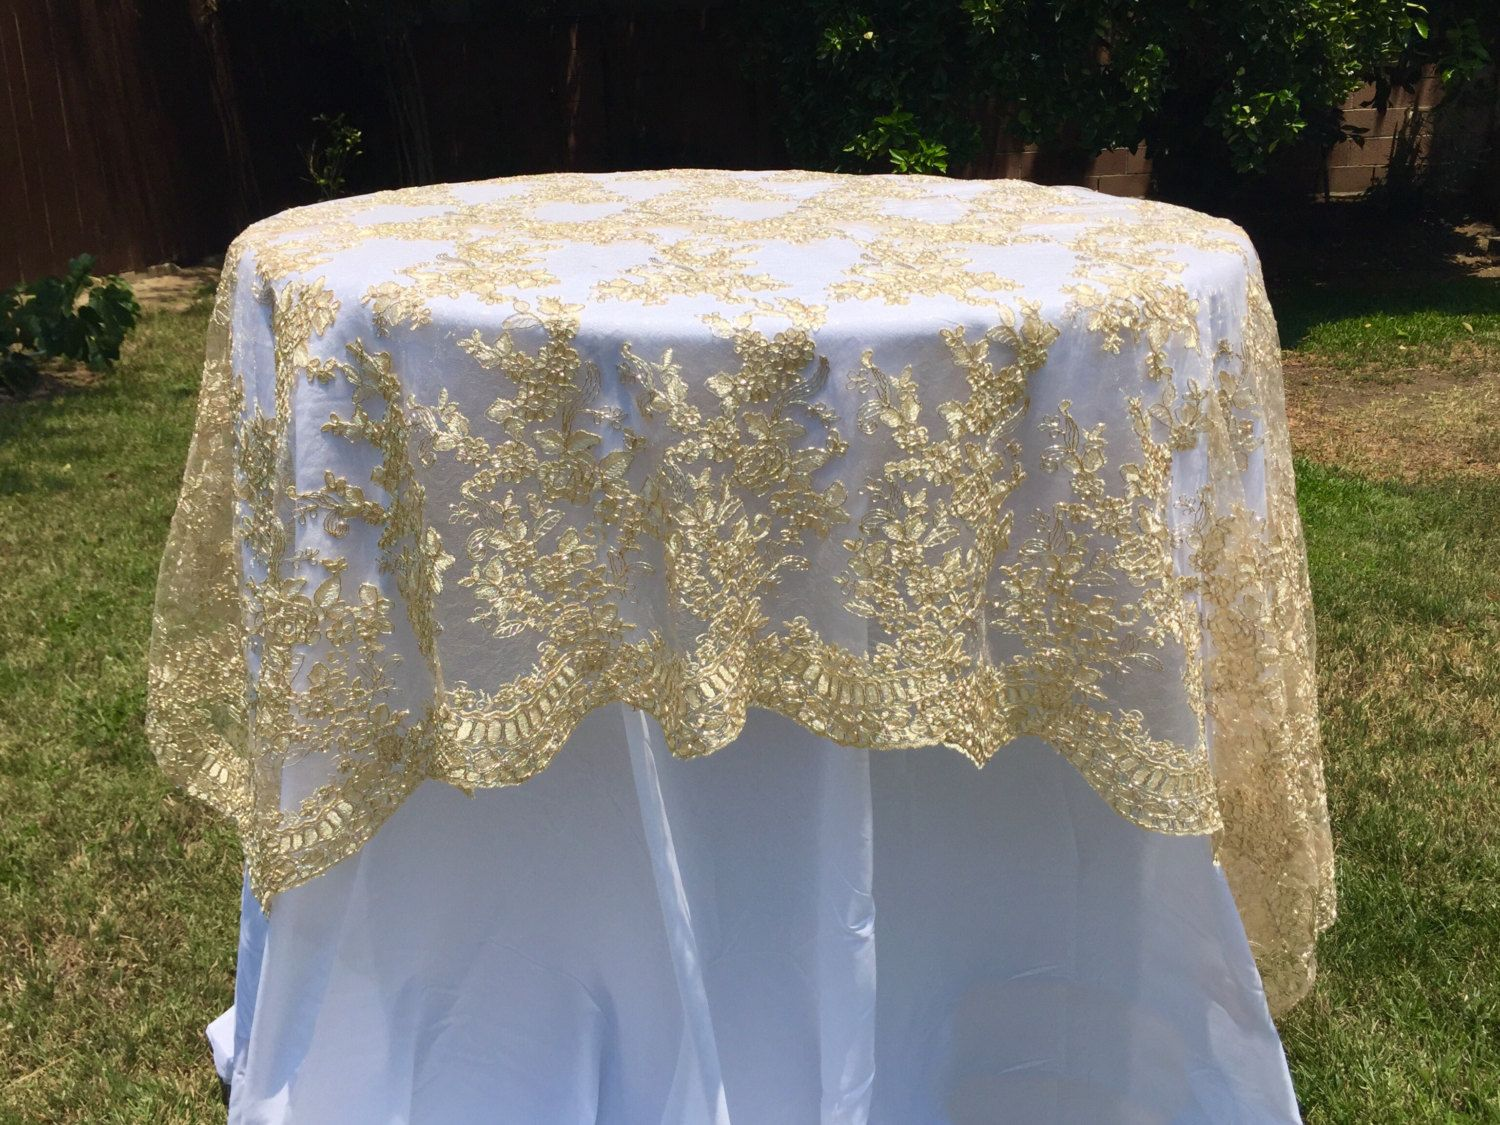 gold or silver sequence chain lace table overlay, lace tablecloth